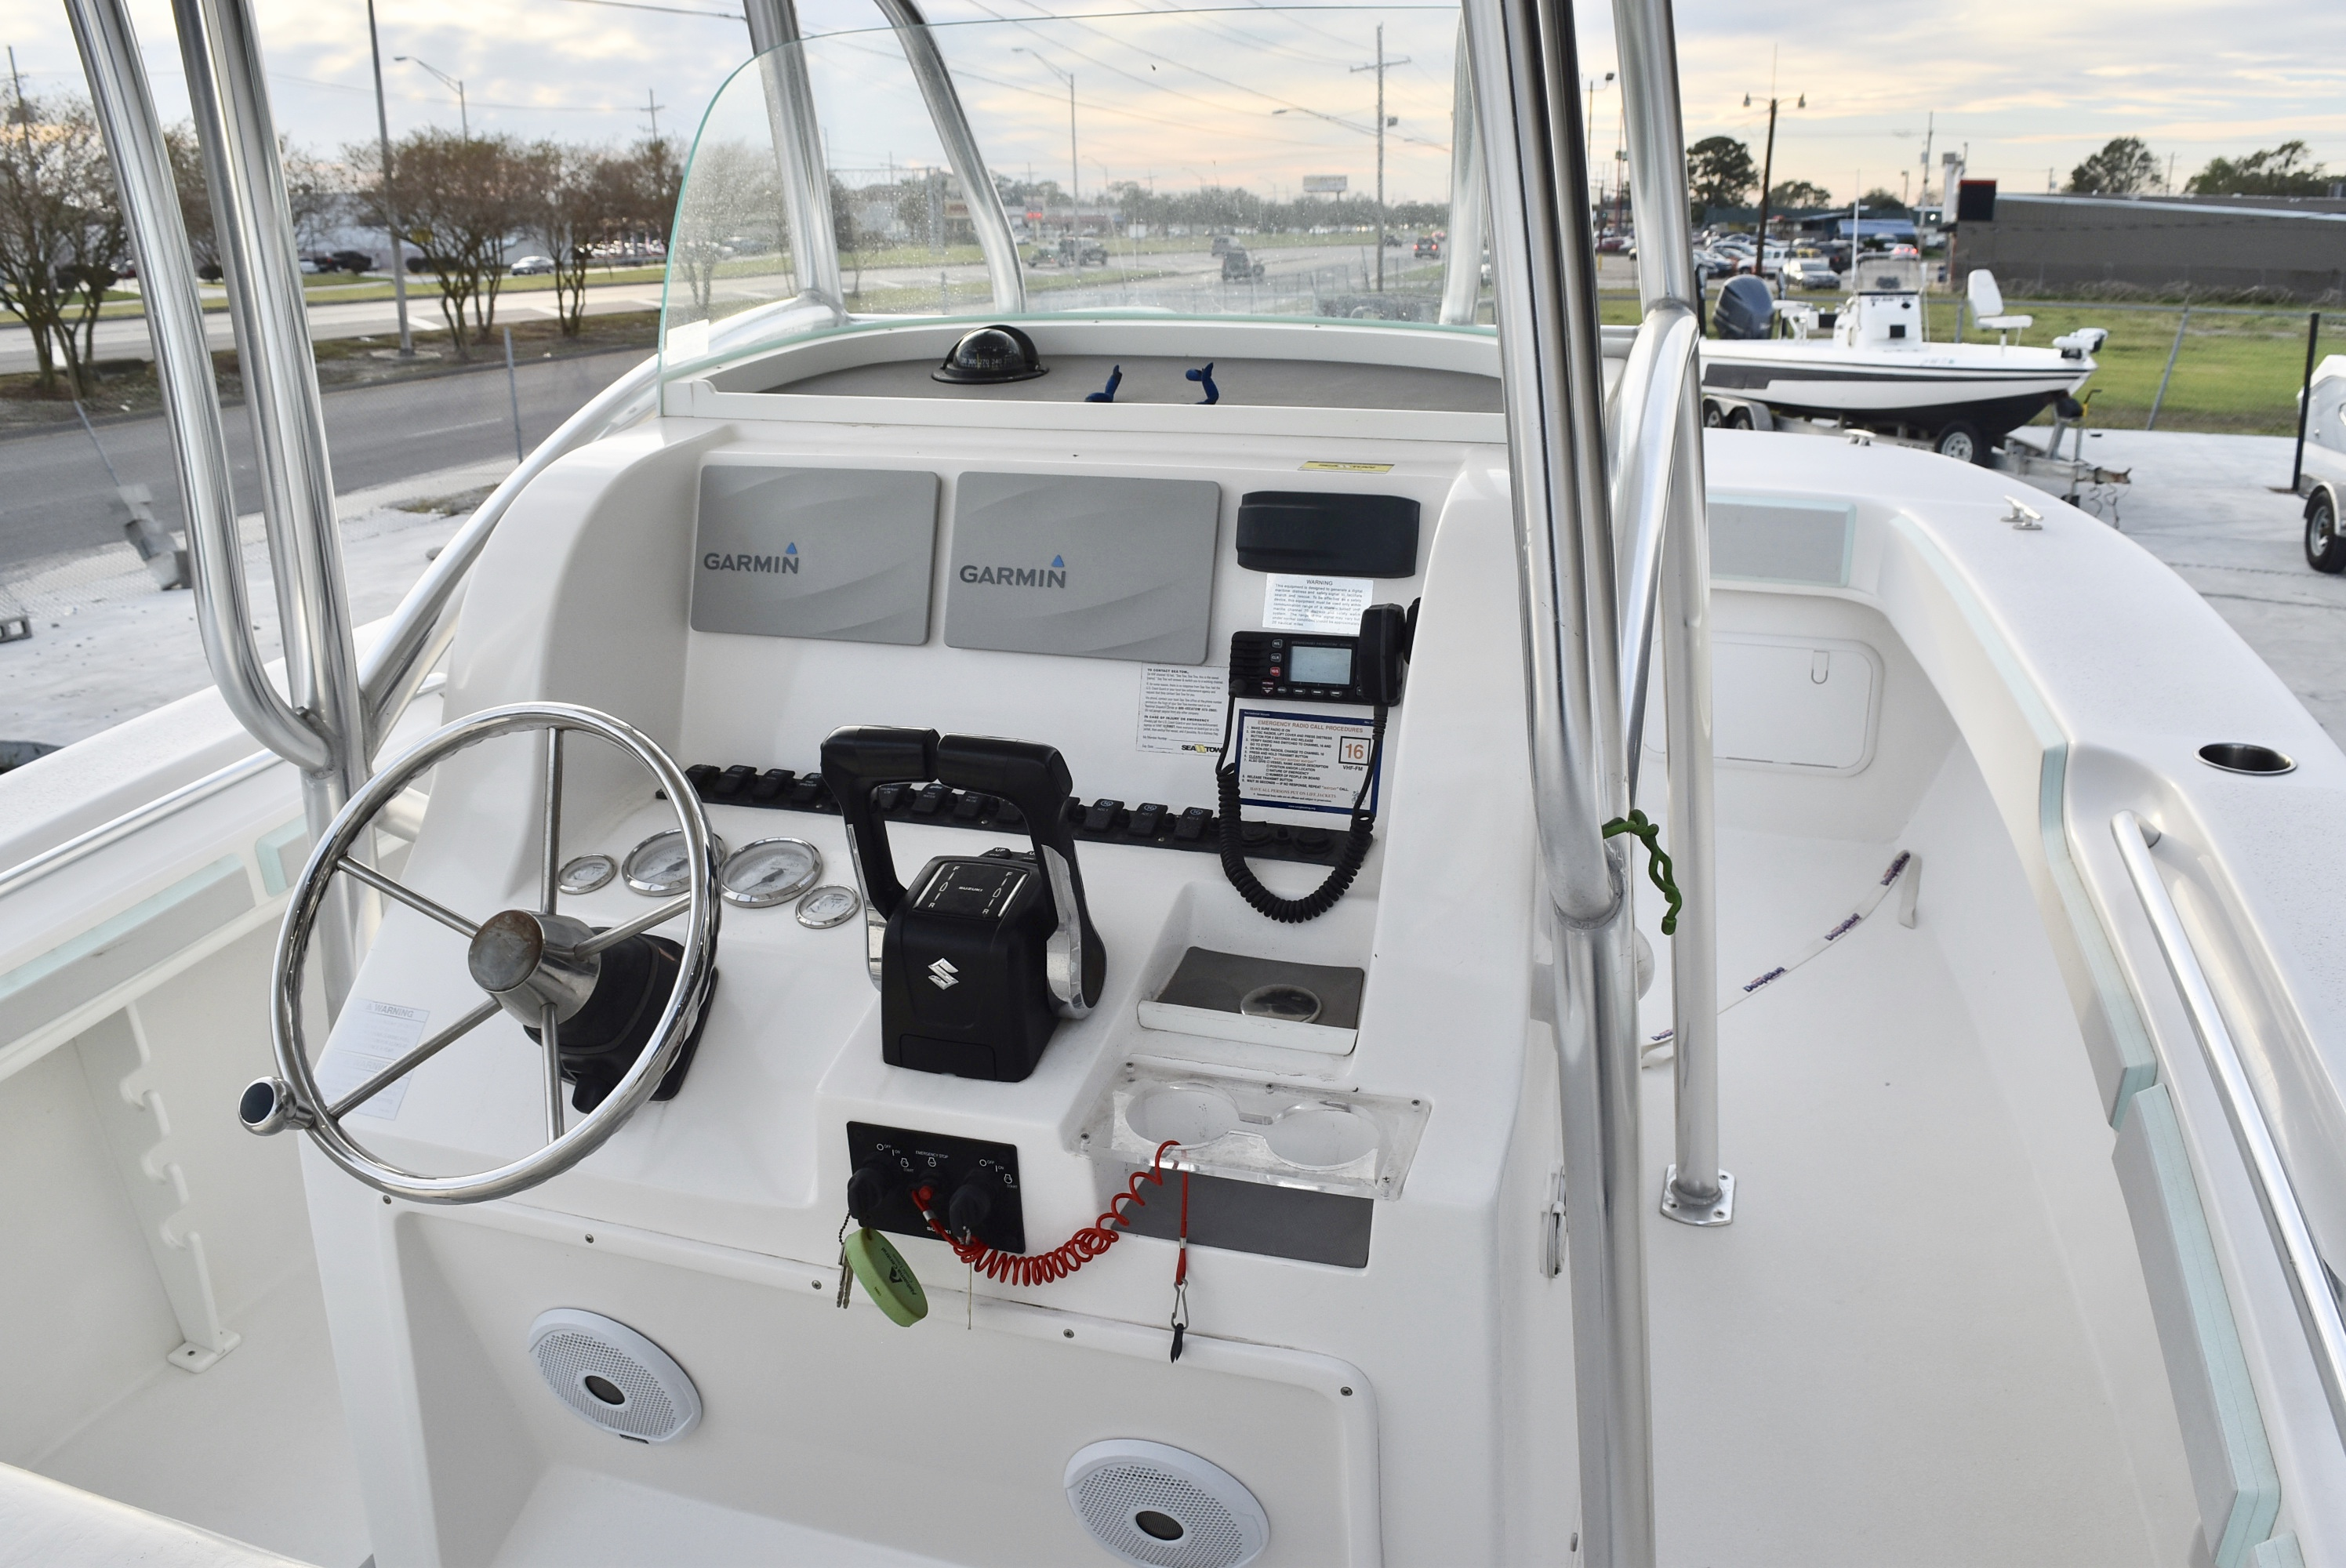 2018 Twin Vee boat for sale, model of the boat is 260 CC GF & Image # 13 of 18